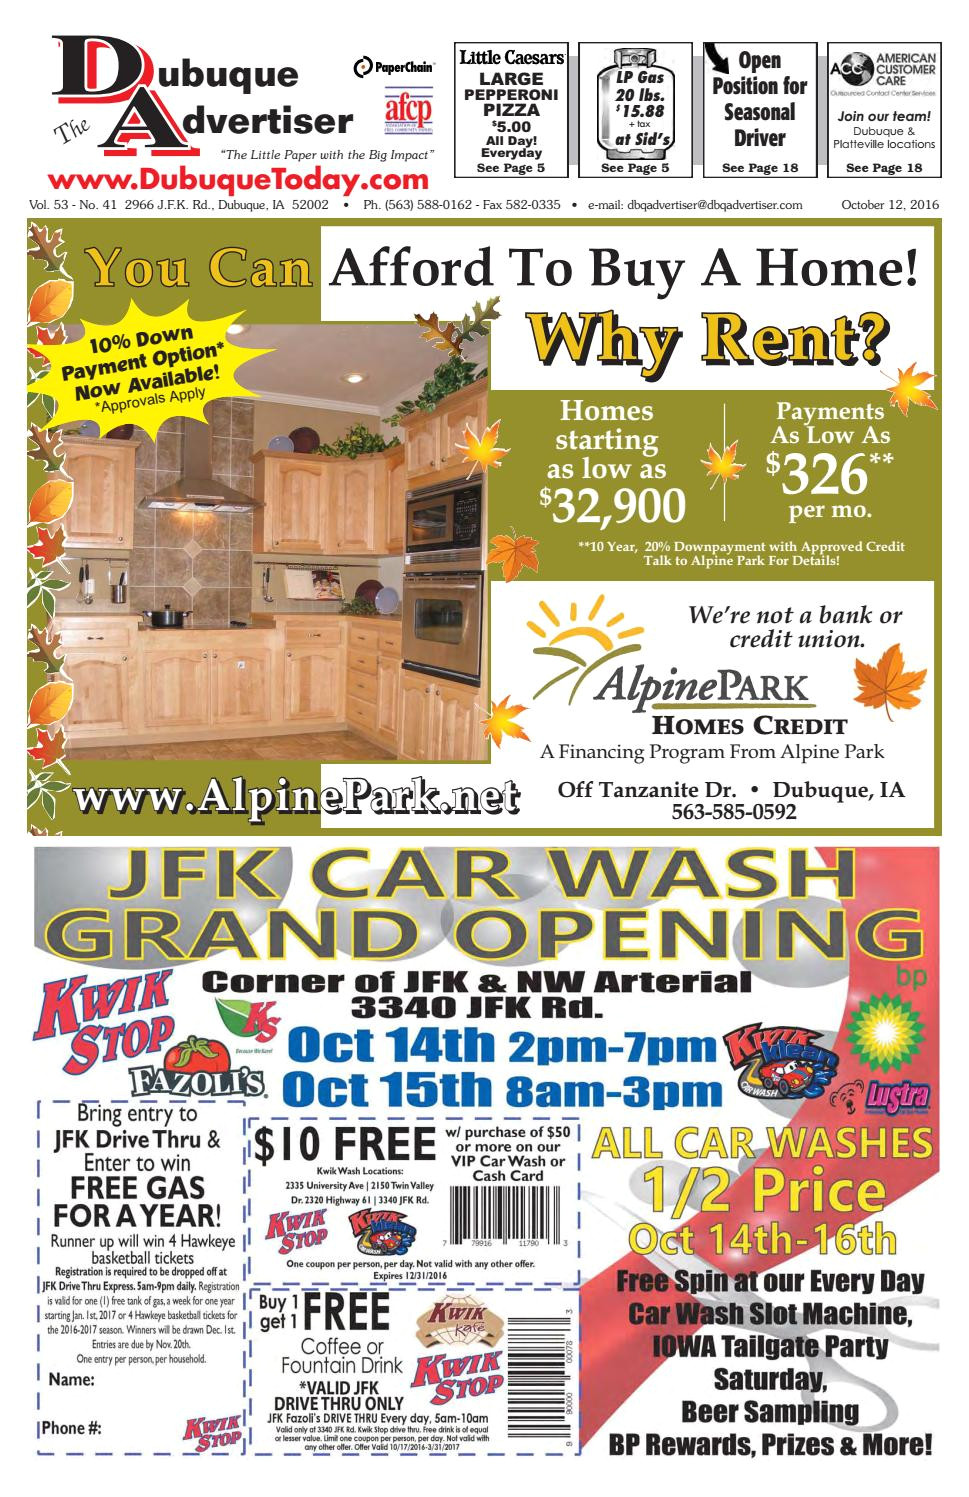 Midwest Rug Company Springfield Mo the Dubuque Advertiser October 12 2016 by the Dubuque Advertiser